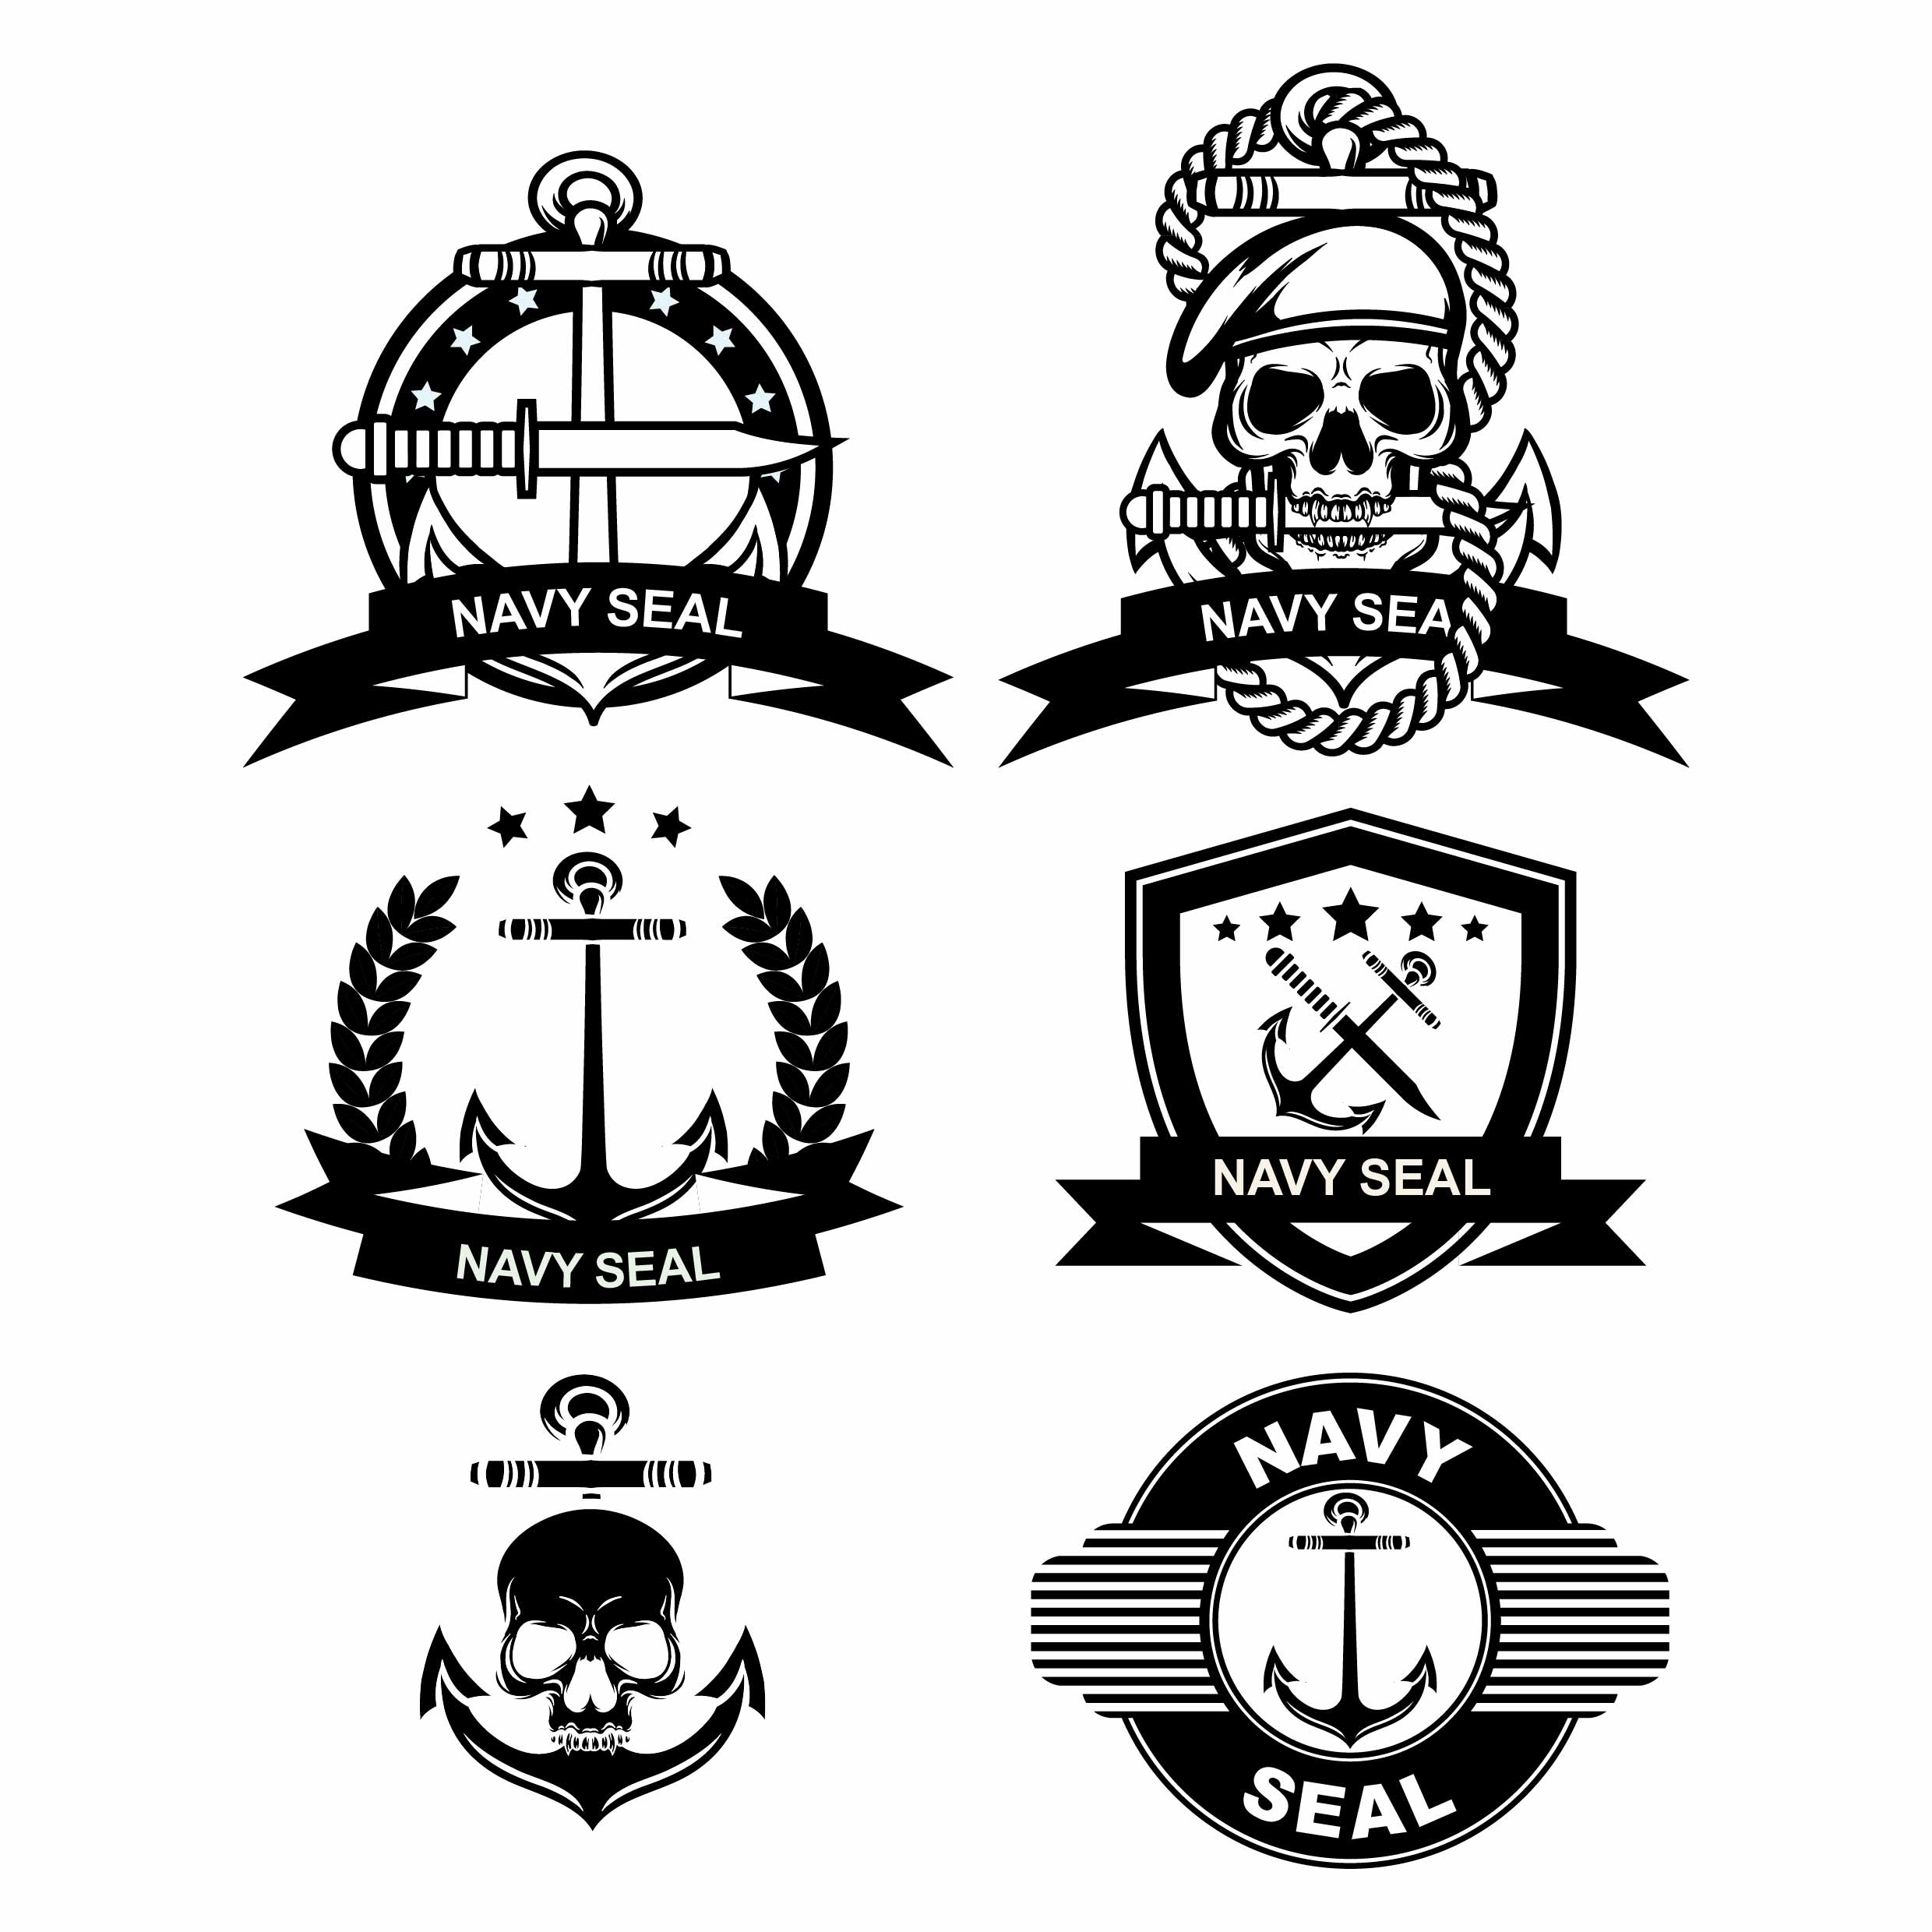 Navy Seal Badge Vectors